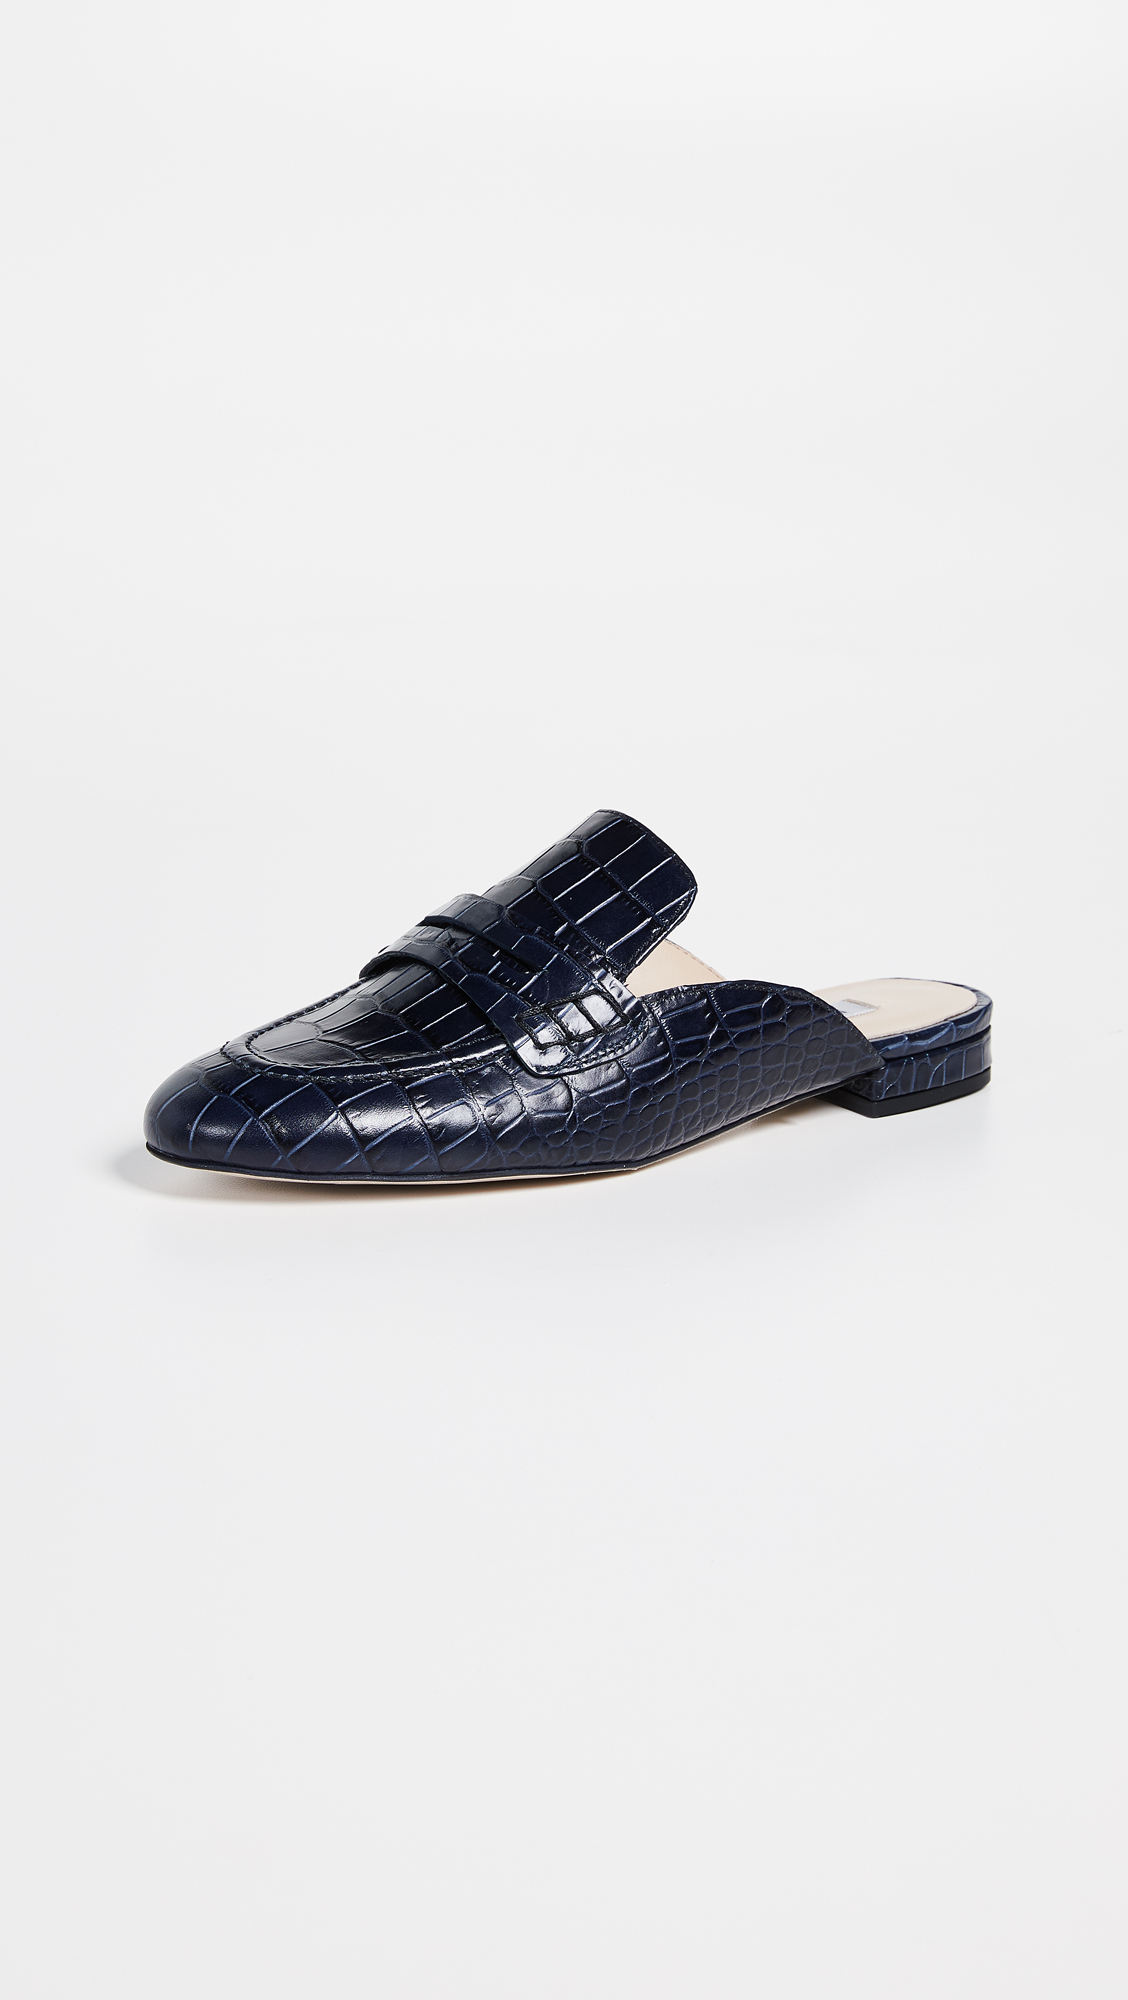 Croc Embossed Navy Blue Mule Loafer